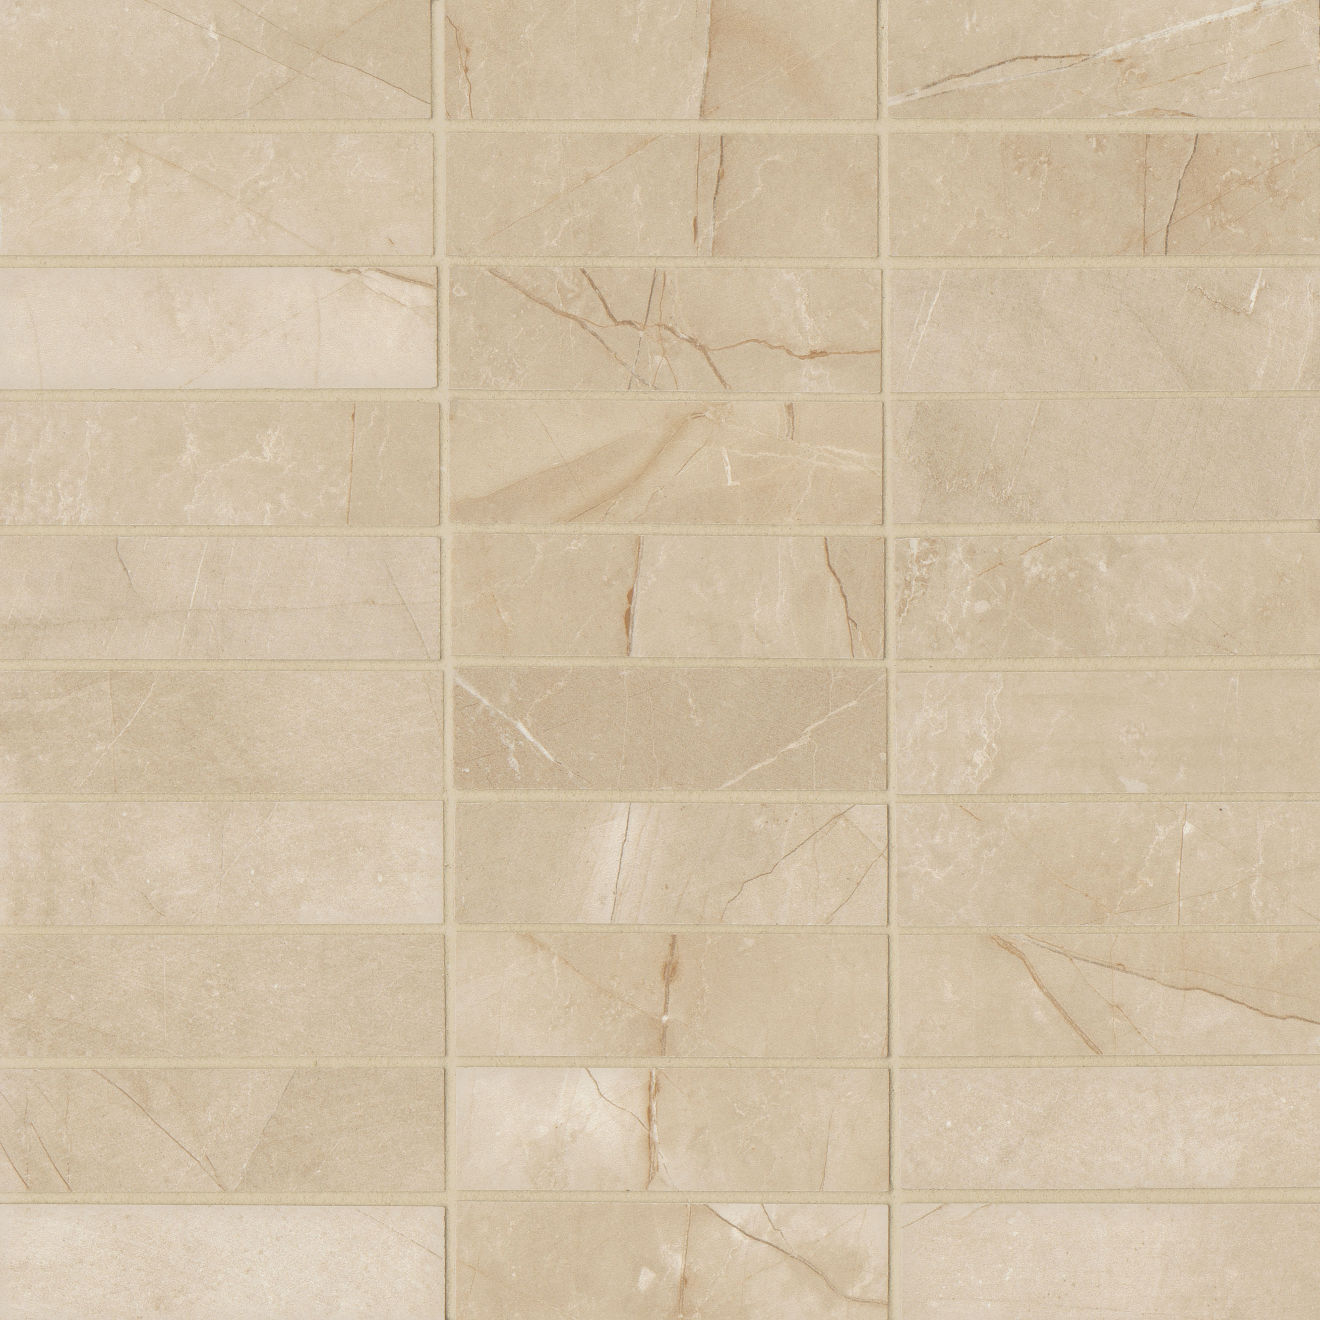 "Pulpis 1""x4"" Honed Porcelain Mosaic in Beige"